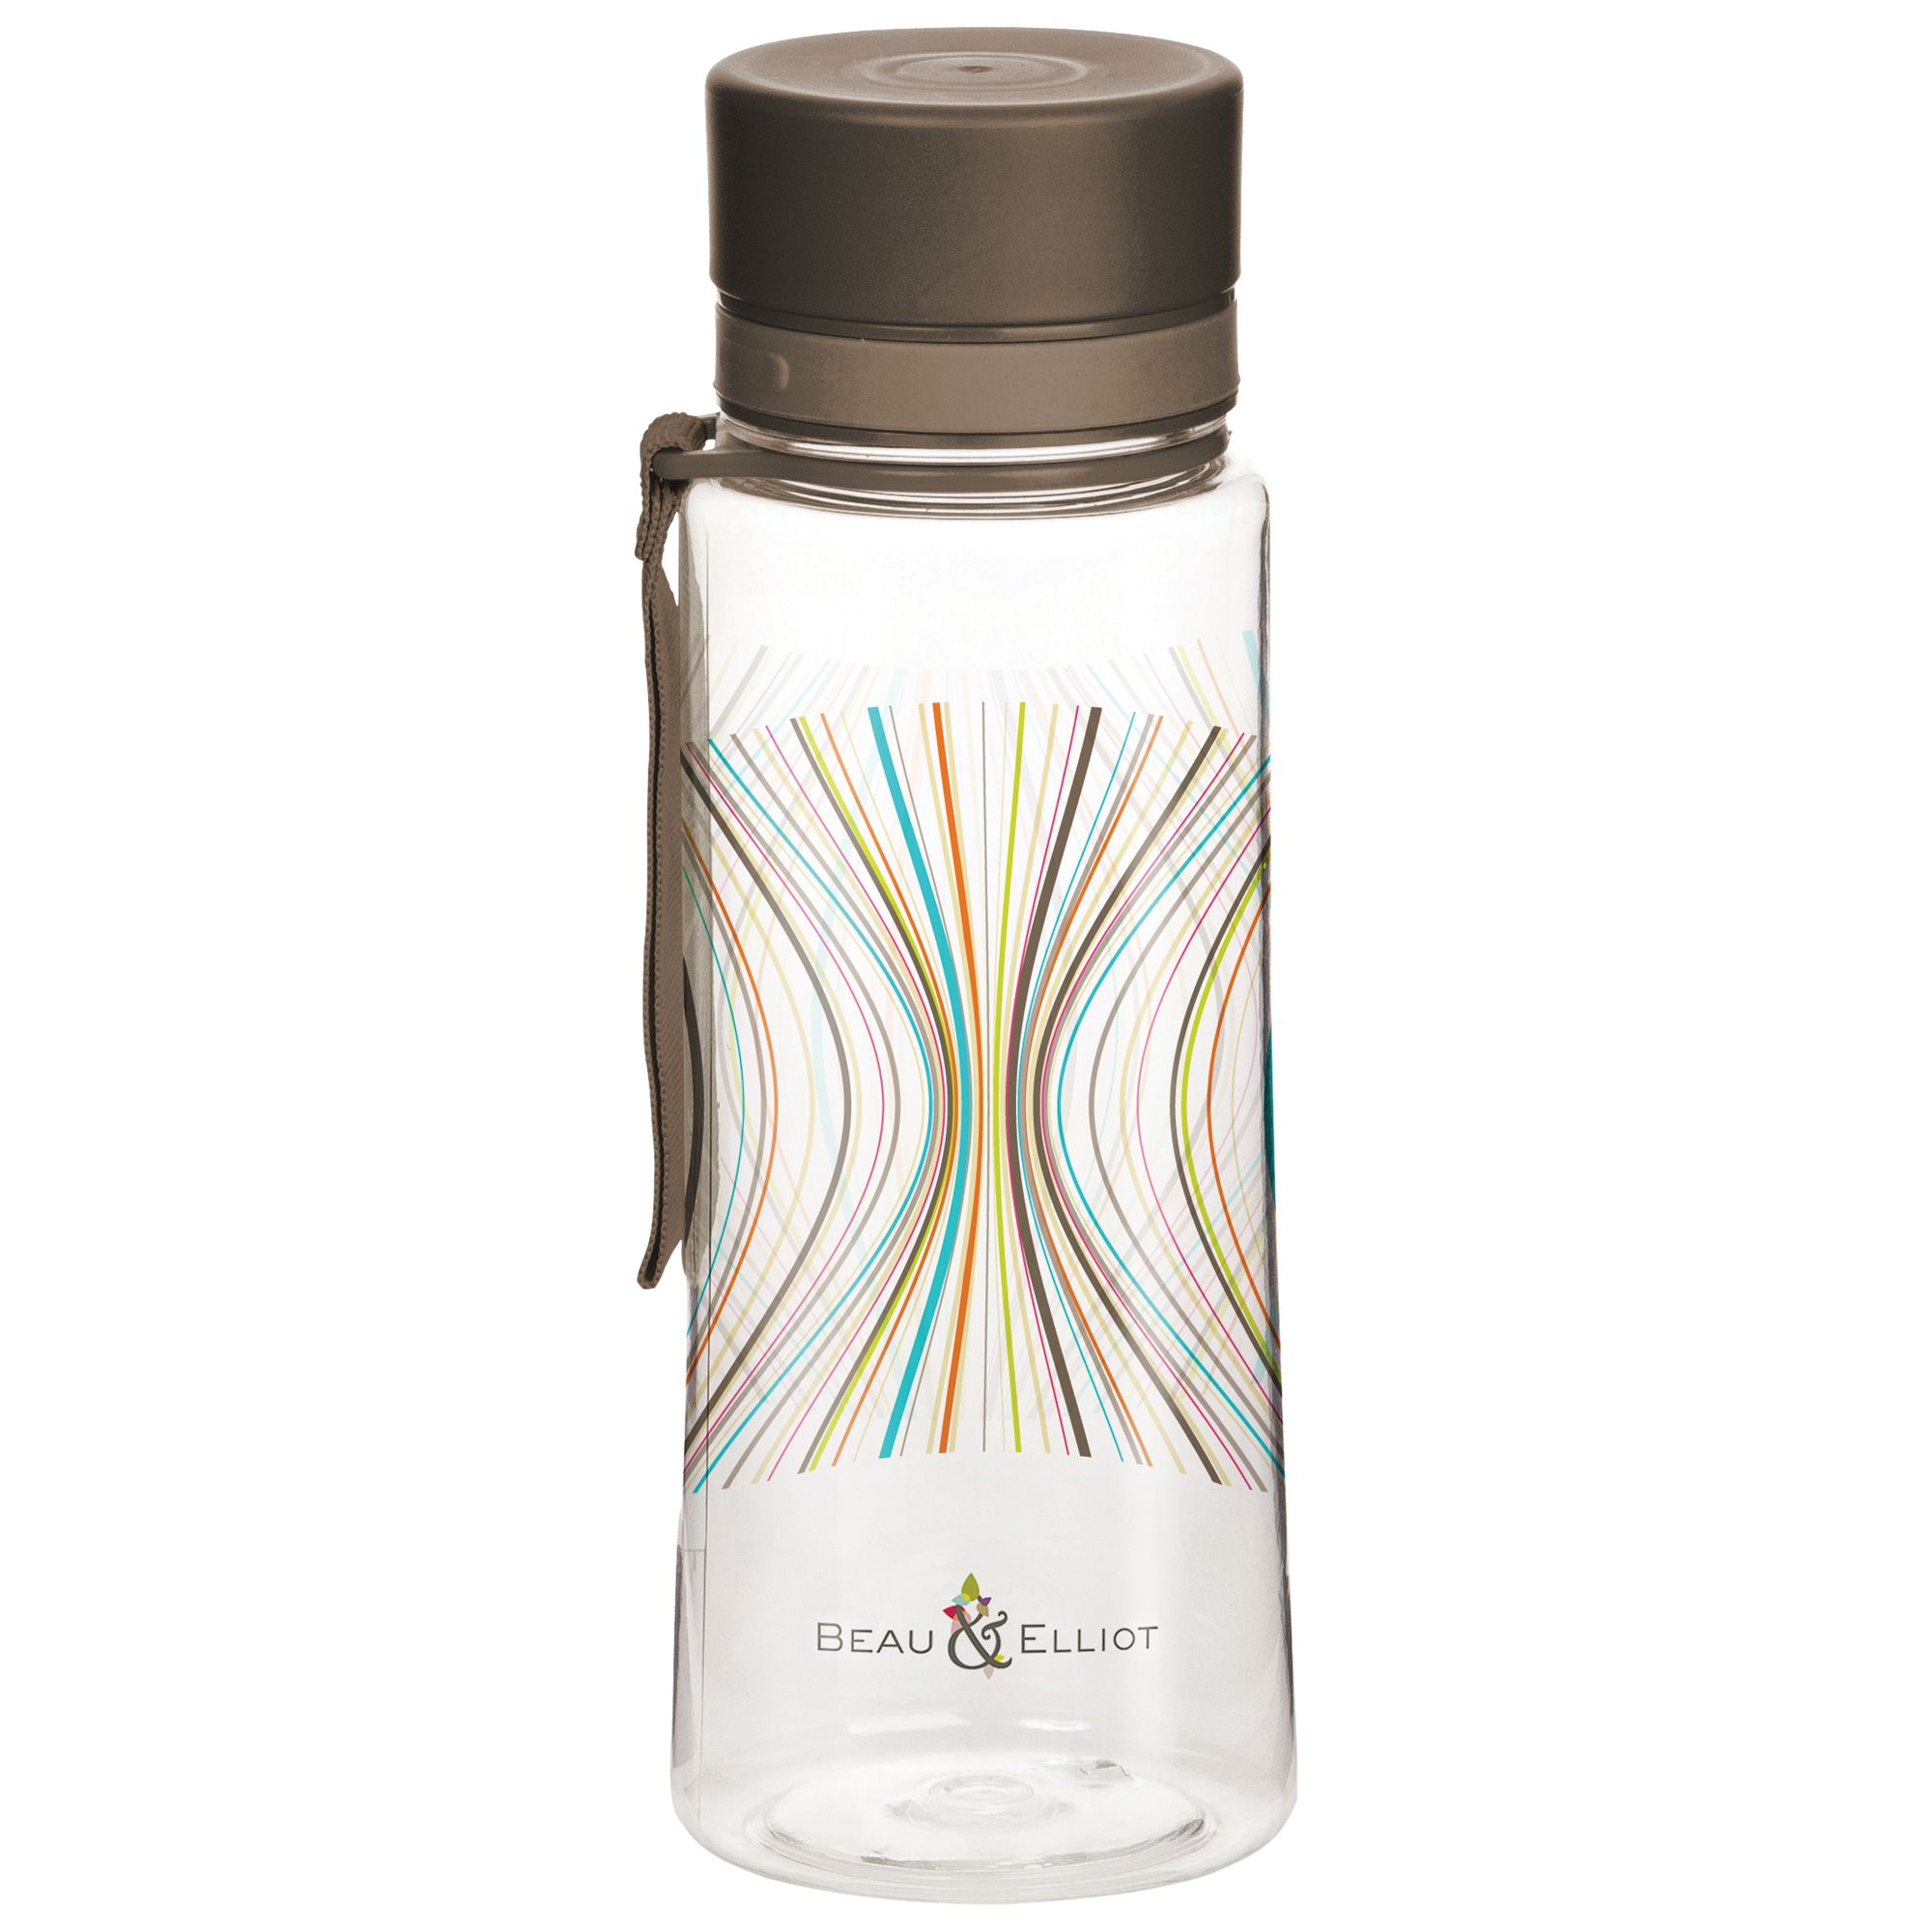 Beau & Elliot Twine Drinks Bottle